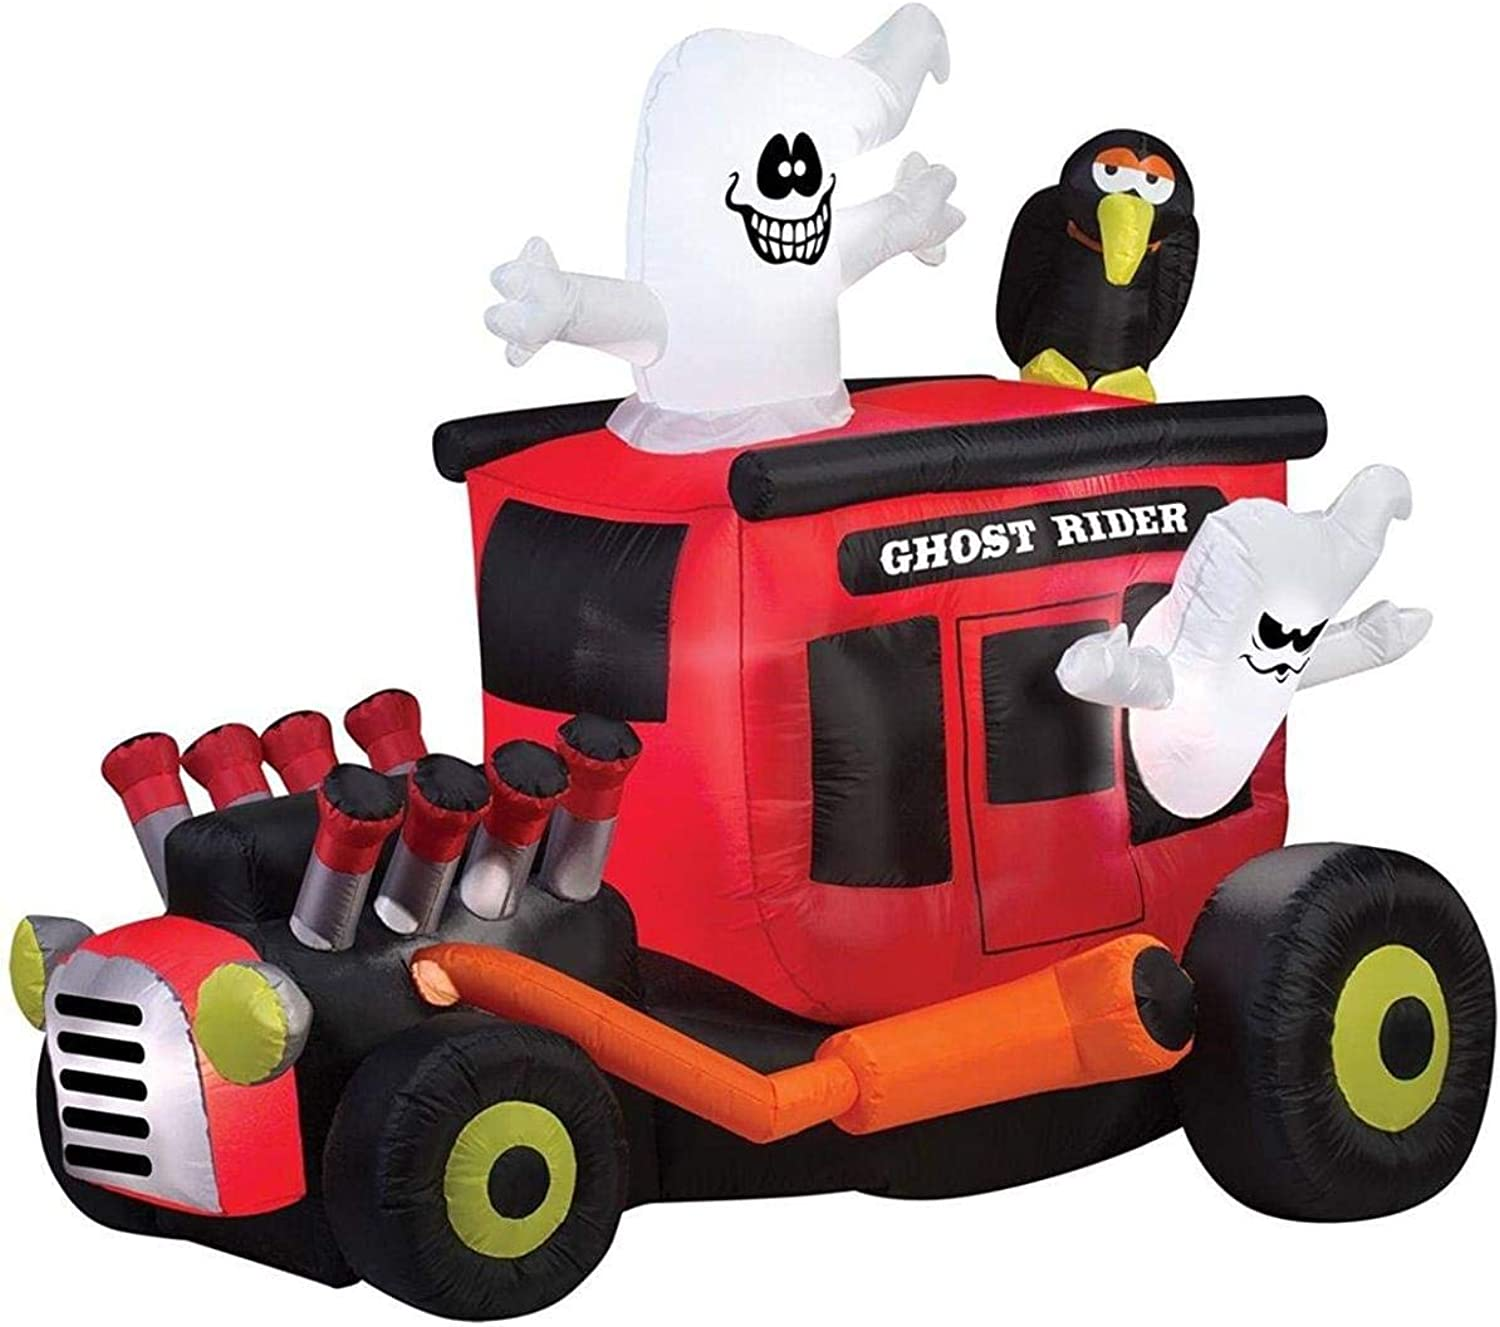 Gemmy Airblown Inflatable Animated Ghost Rider Hot Rod with Crow - Holiday Decoration, 6-foot Long x 5-foot Tall x 3.5-foot Wide